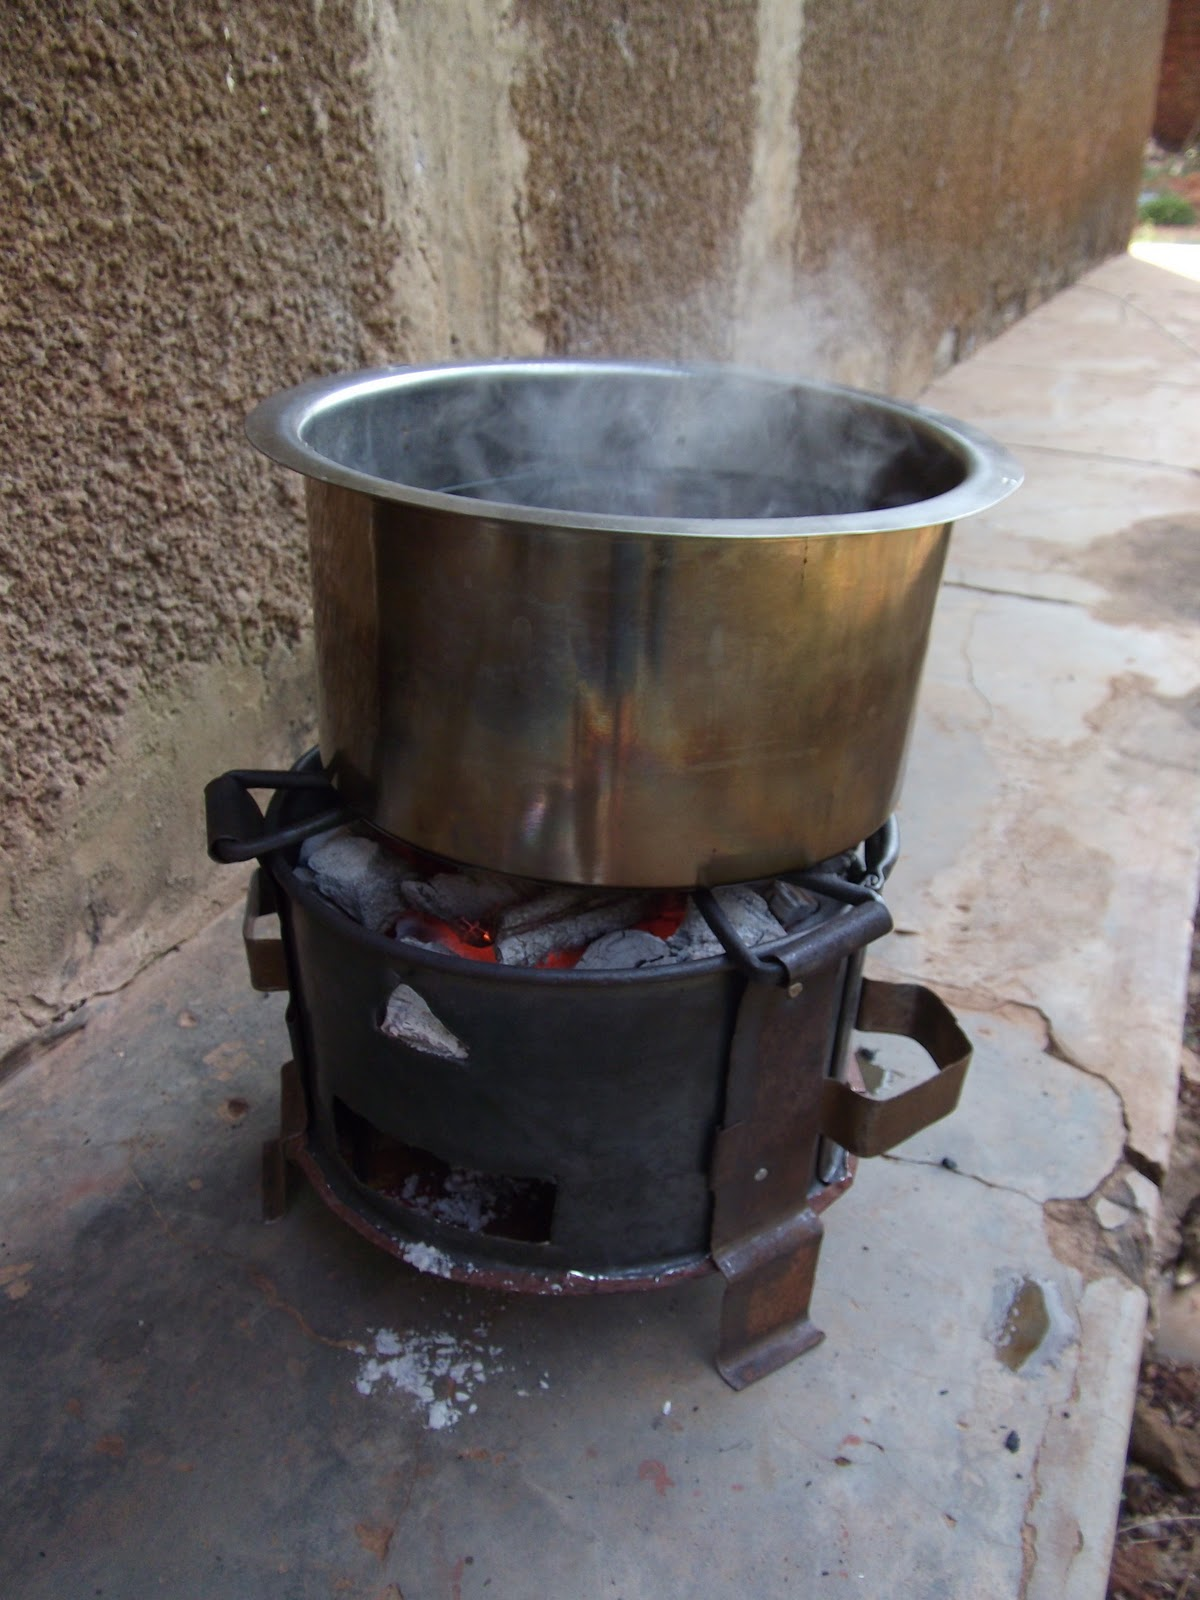 Cooking without a stove - Having Lived In A Mud Hut In Rural Uganda For Almost A Year I Understand The Difficulties Of Cooking Without Power And With A Limited Dirty Fuel Source